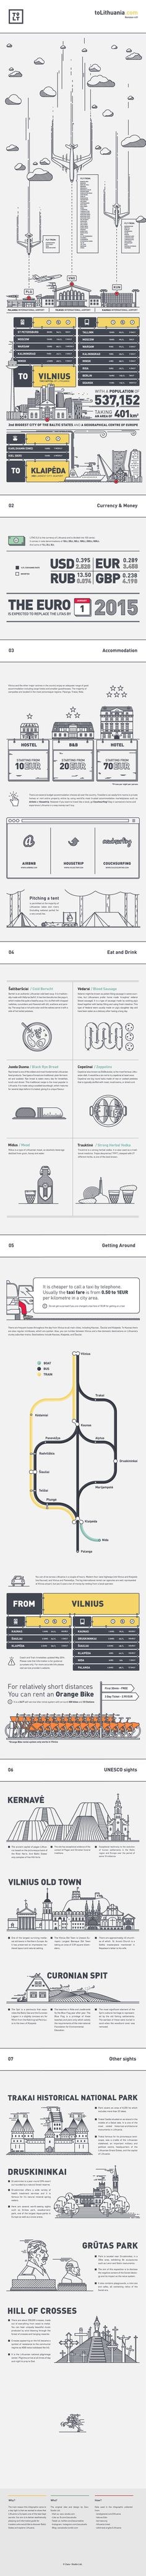 Go To Lithuania infographic #infographic #behance #lithuania #illustration #minimal #vector #linear #travel #tourism